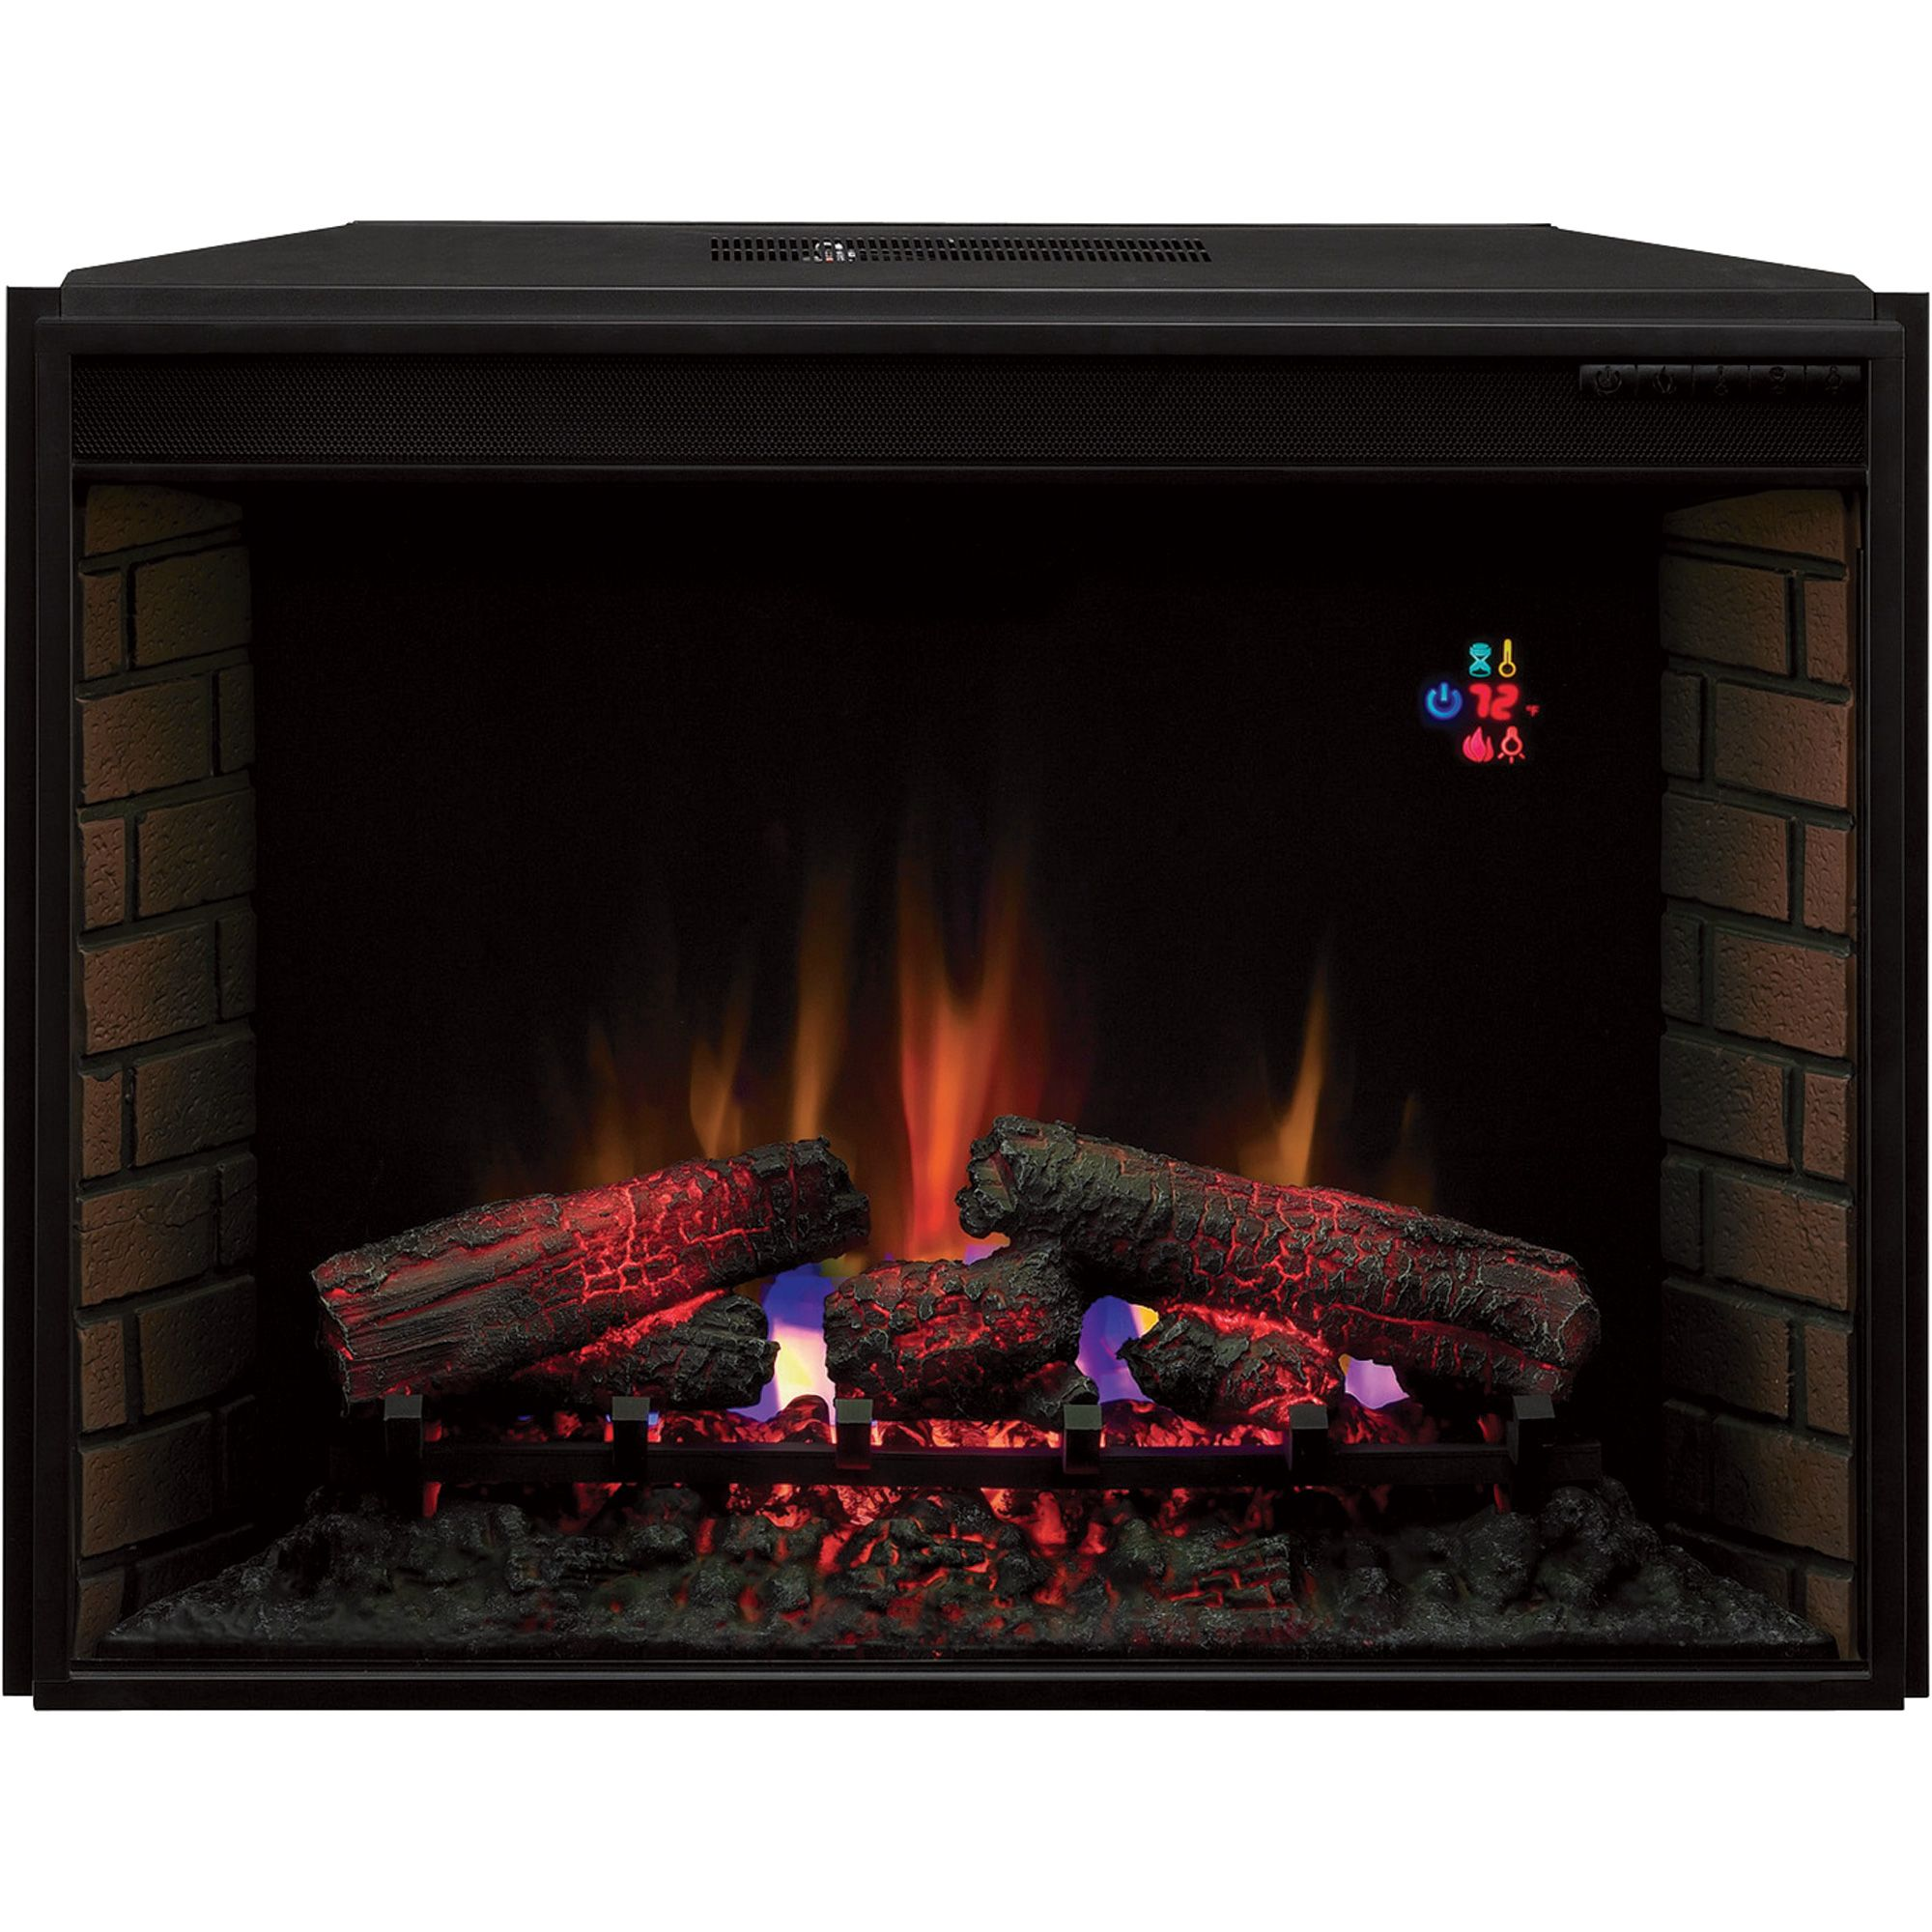 Chimneyfree Vent Free Blue Spectrafire Flame Electric Insert